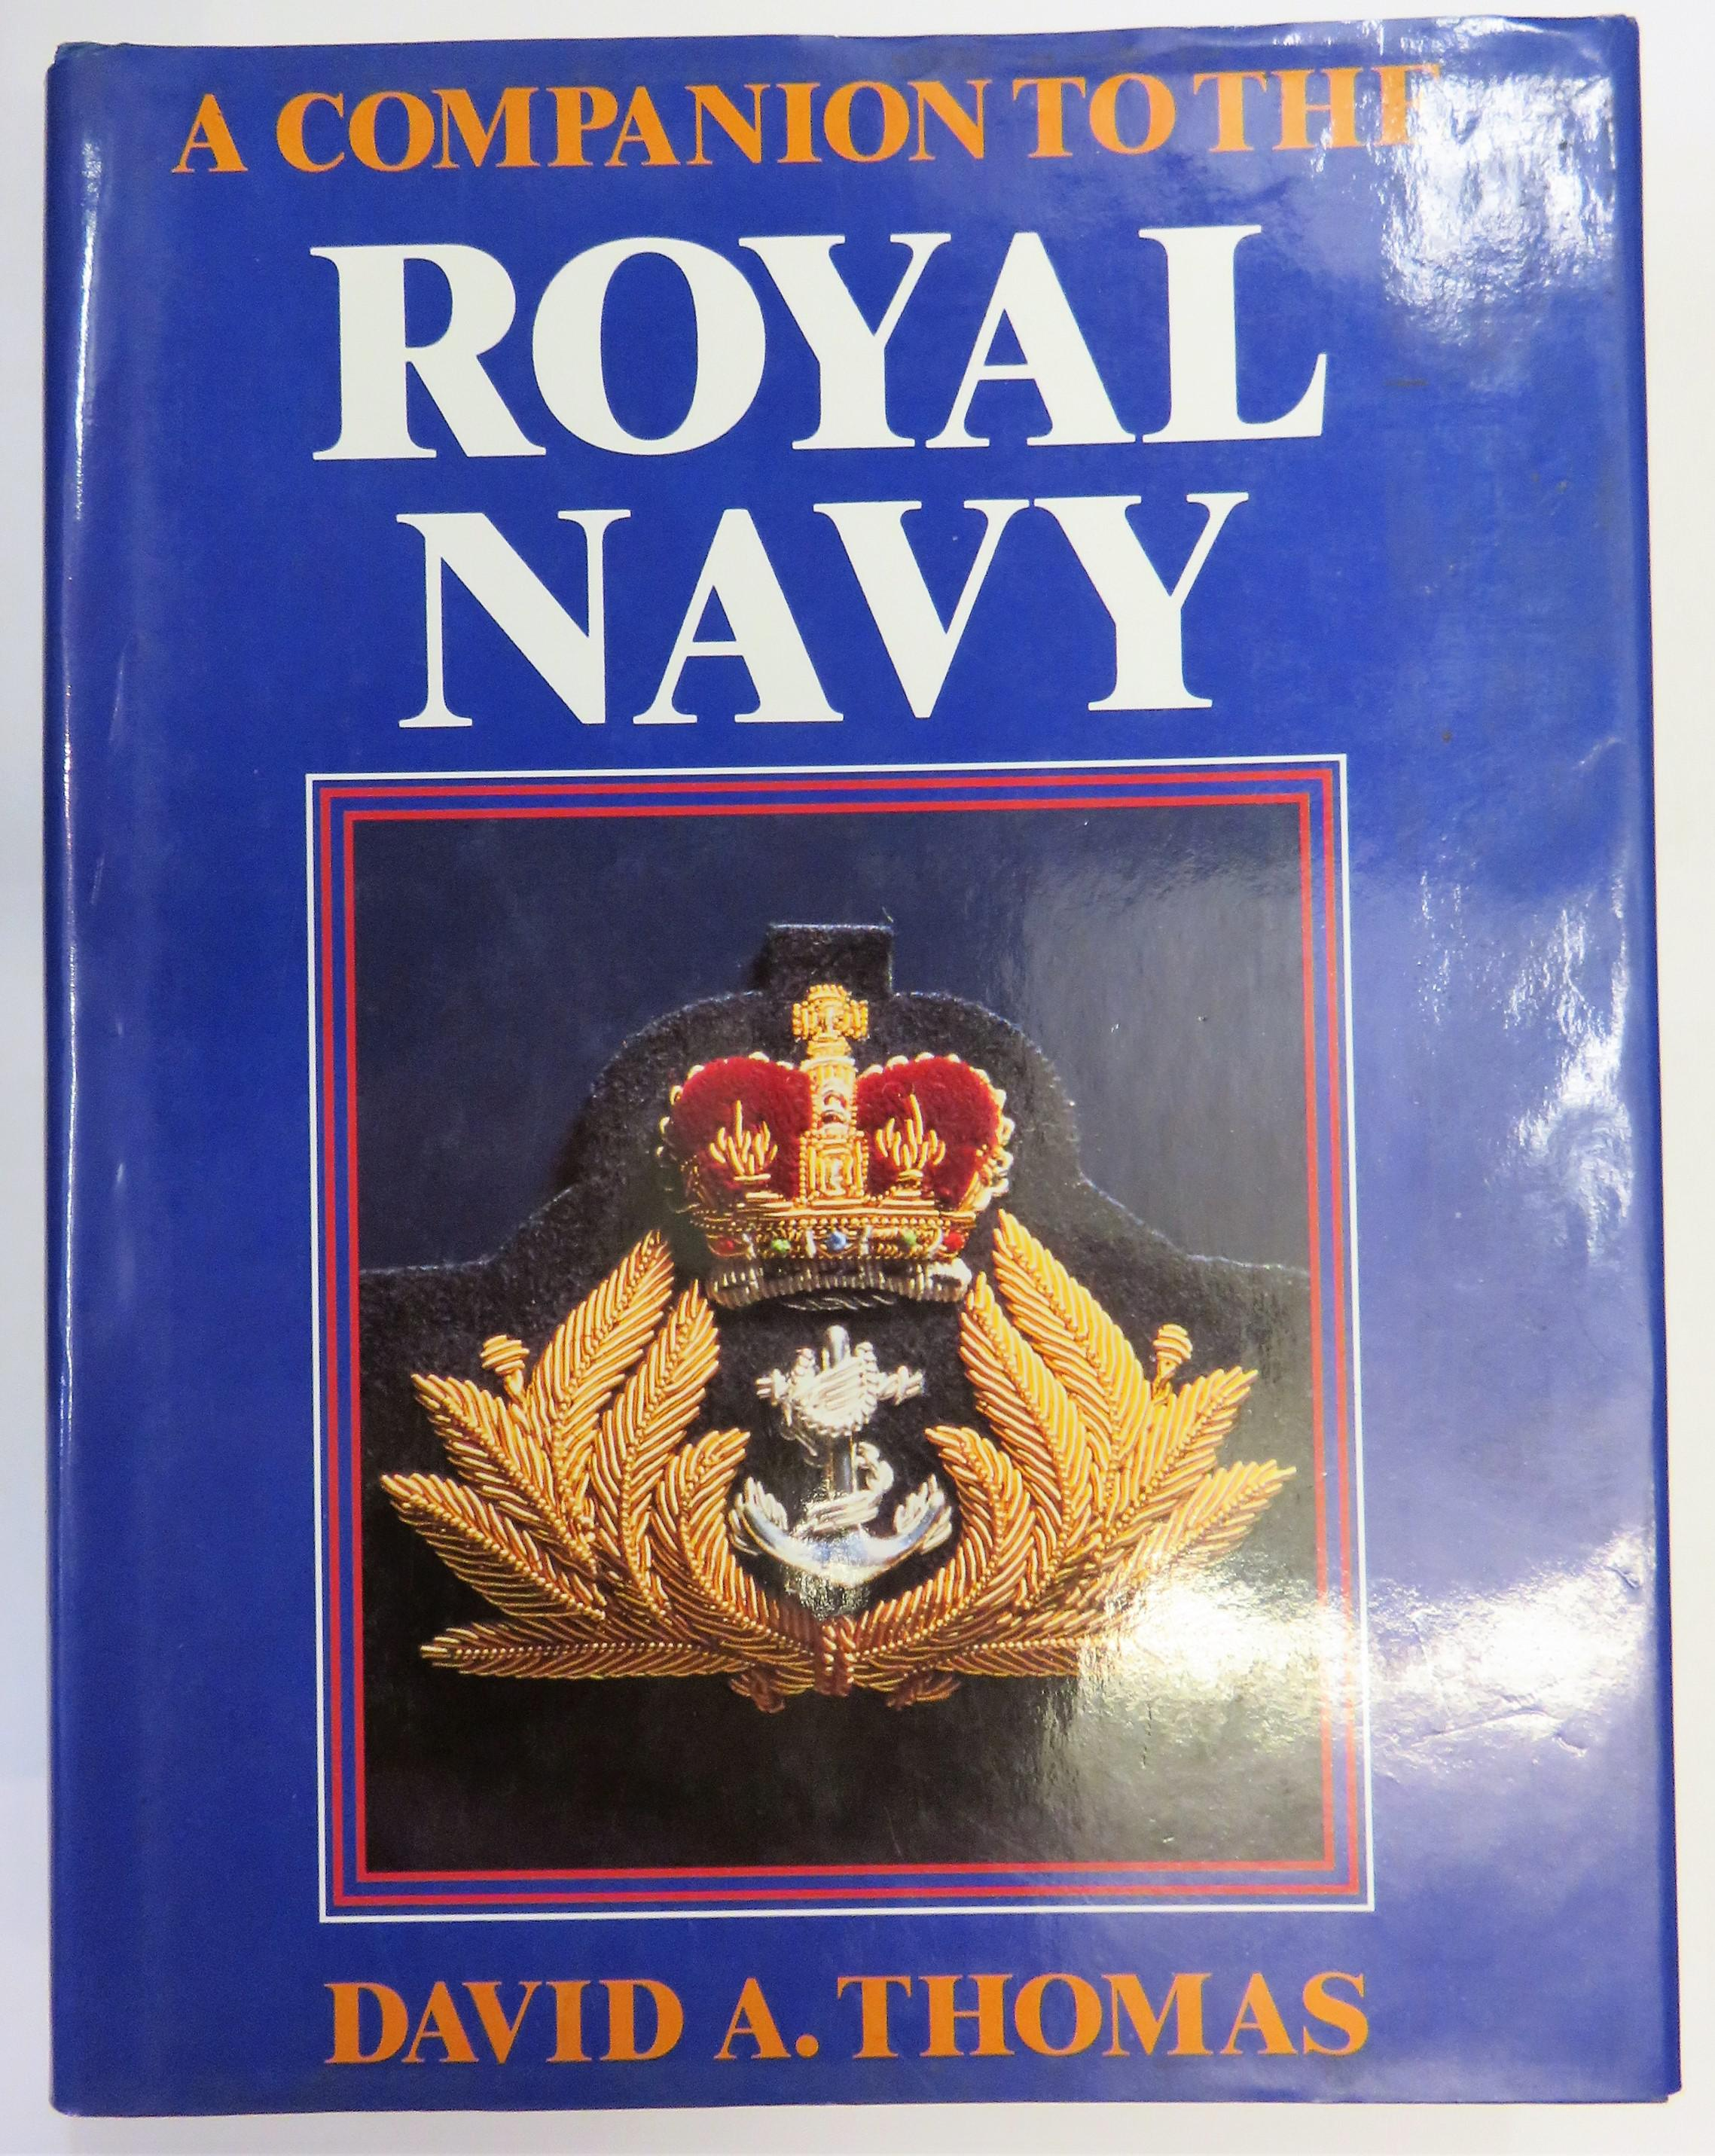 A companion to the Royal Navy